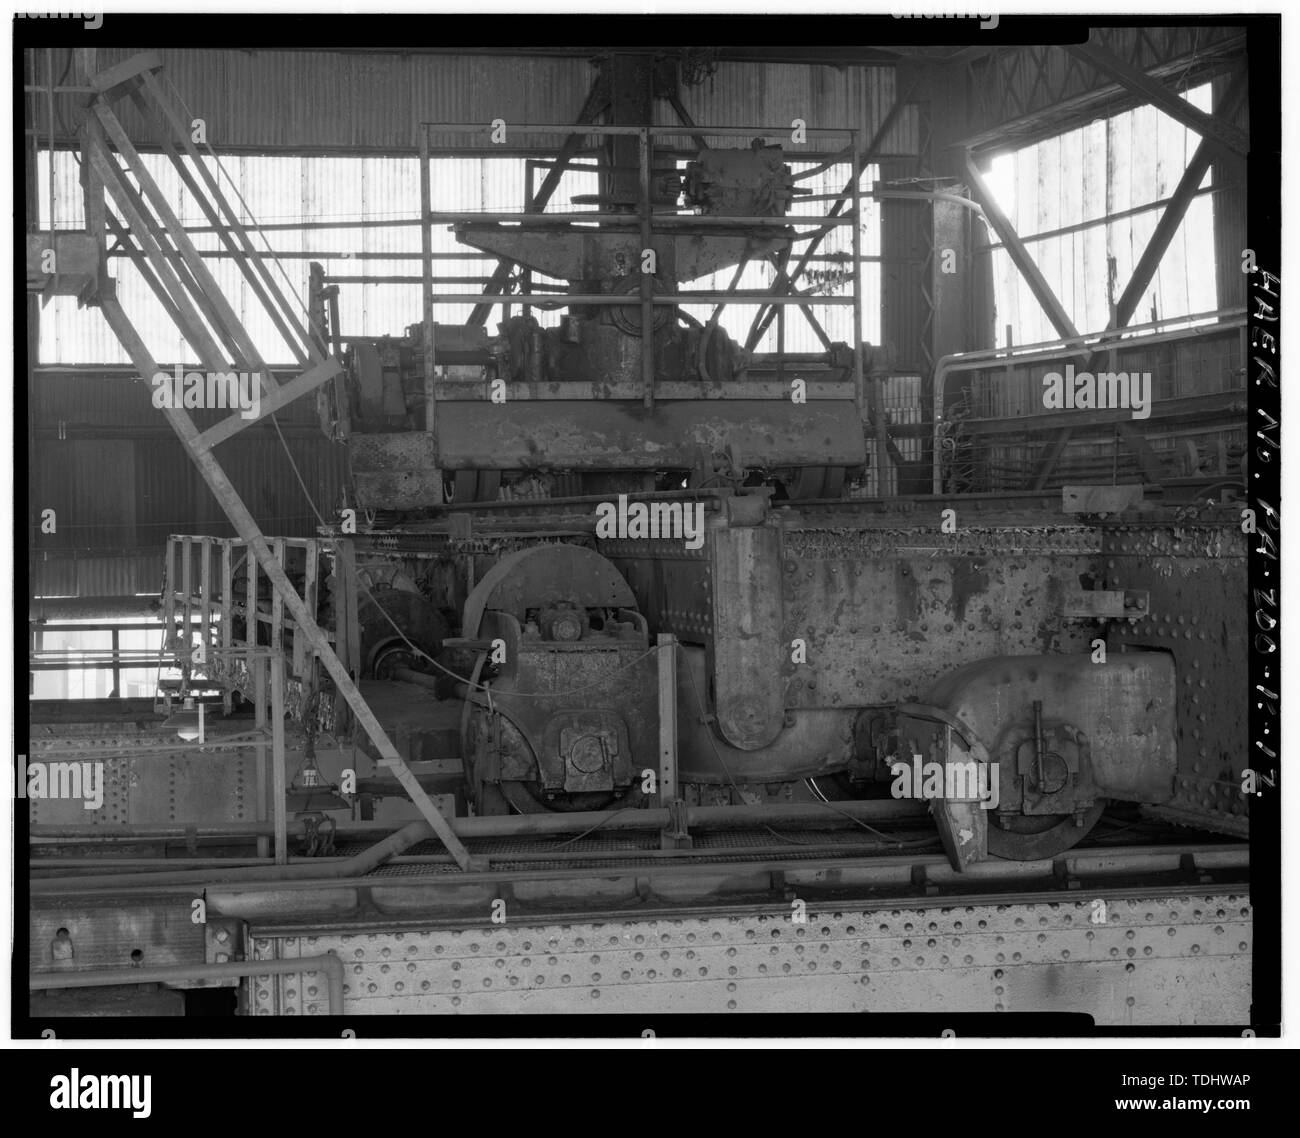 OVERHEAD CRANE WITH HYDRAULIC LIFTING CYLINDER LOCATED EAST OF No. 1 PRESS. - U.S. Steel Homestead Works, Press Shop No. 1, Along Monongahela River, Homestead, Allegheny County, PA; U.S. Steel Corporation; Bethlehem Steel Company; United Engineering; Carnegie, Phipps and Company; Davy Brothers; Joseph Whitworth and Company; Fritz, John; Davenport, Russell; Mesta Machine Company; Stupich, Martin, photographer - Stock Image